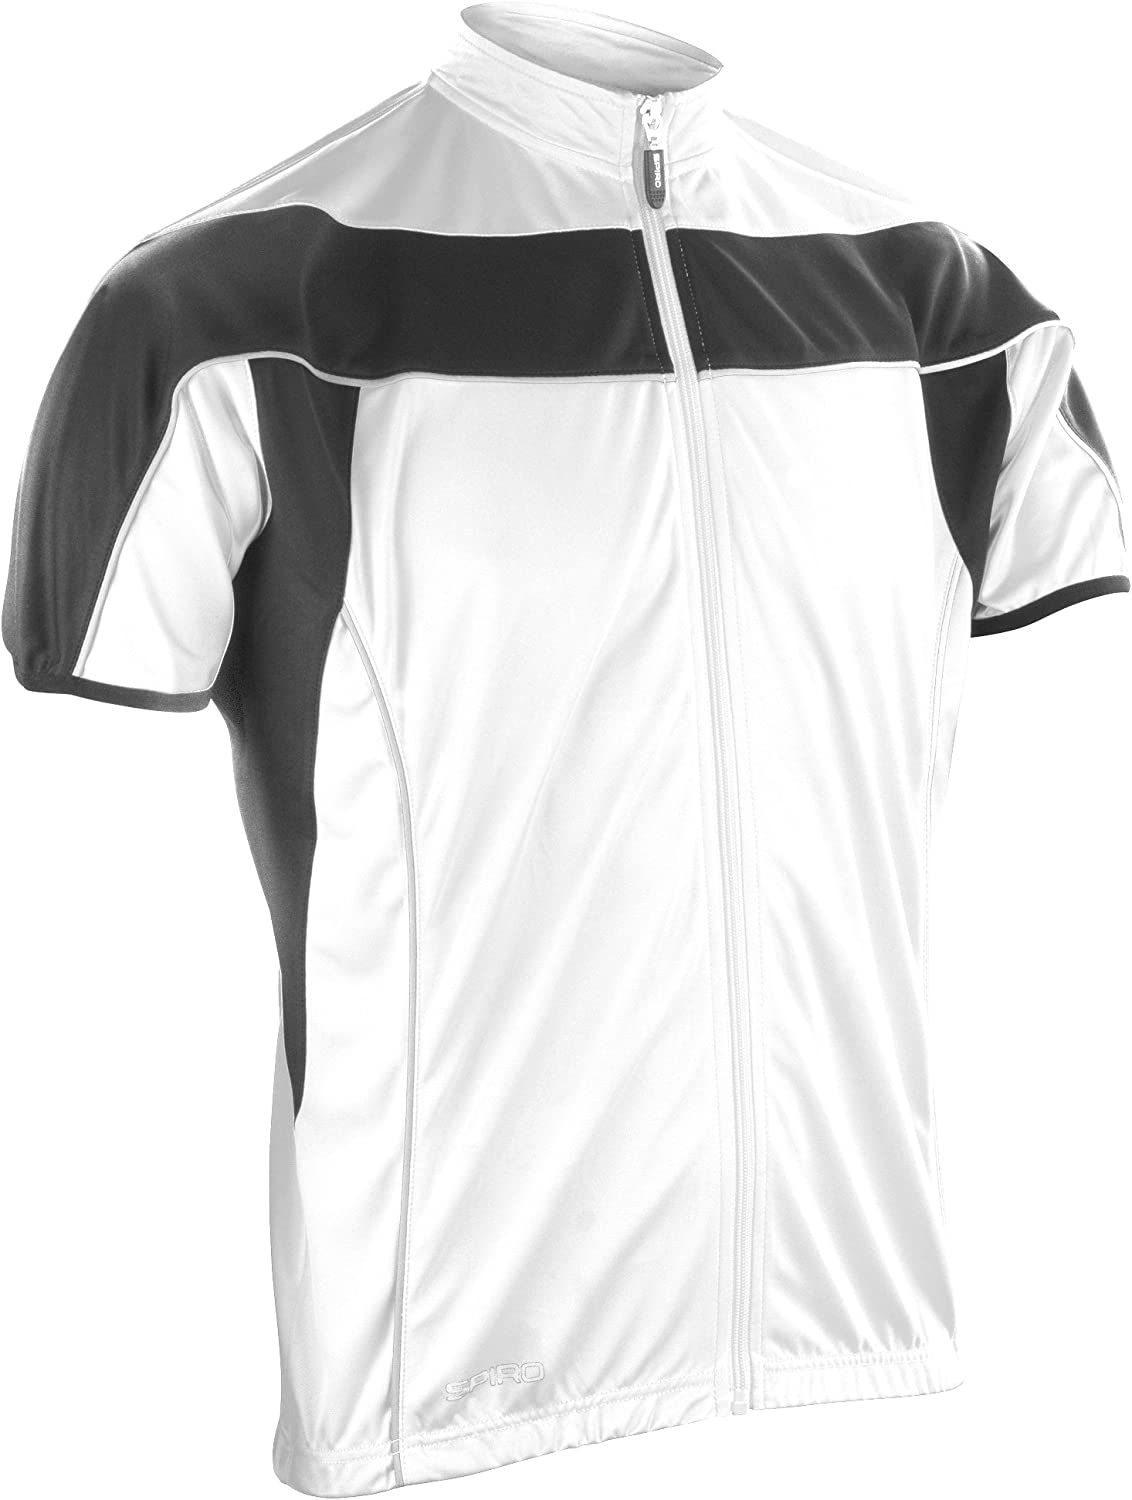 Spiro Cycling Vest Black//White Cyclist Tour Full Zip Performance Top Mens